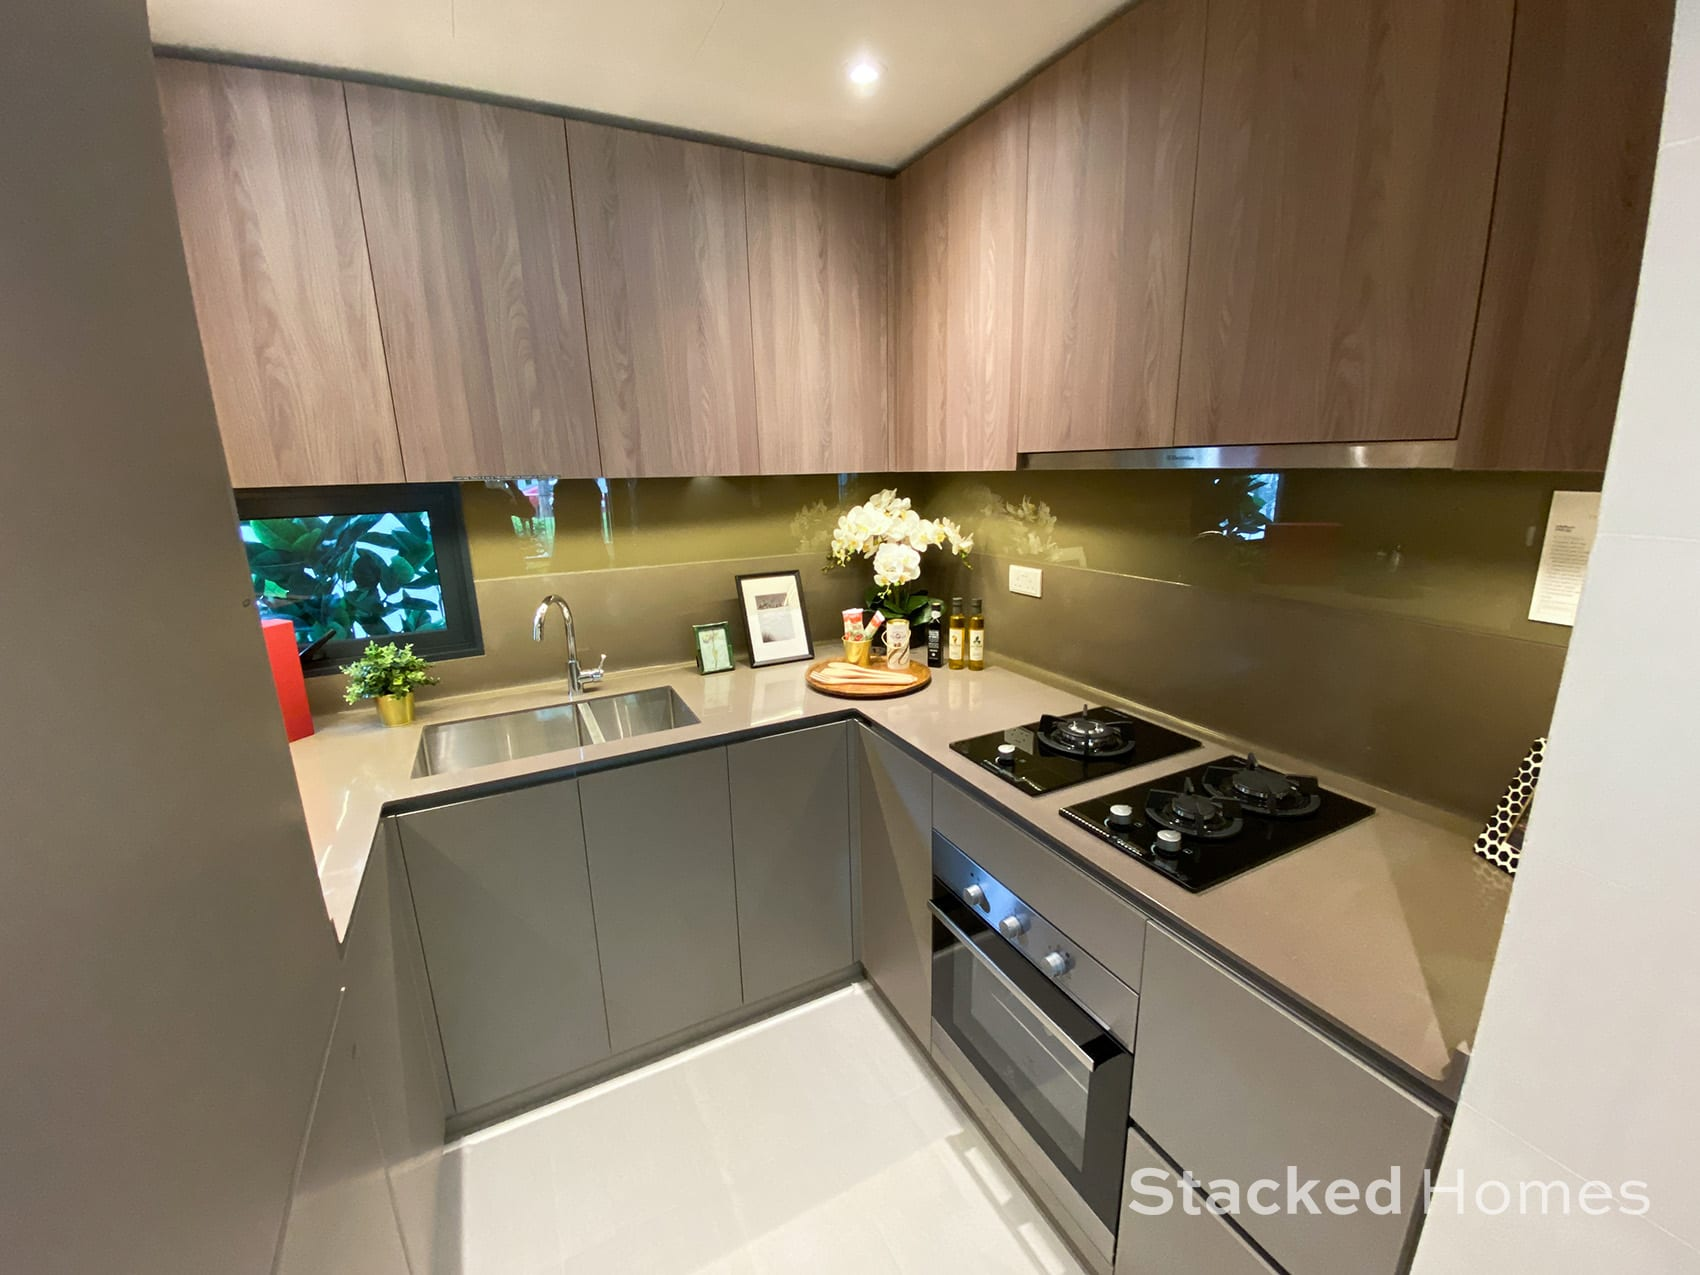 The jovell 3 bedroom kitchen